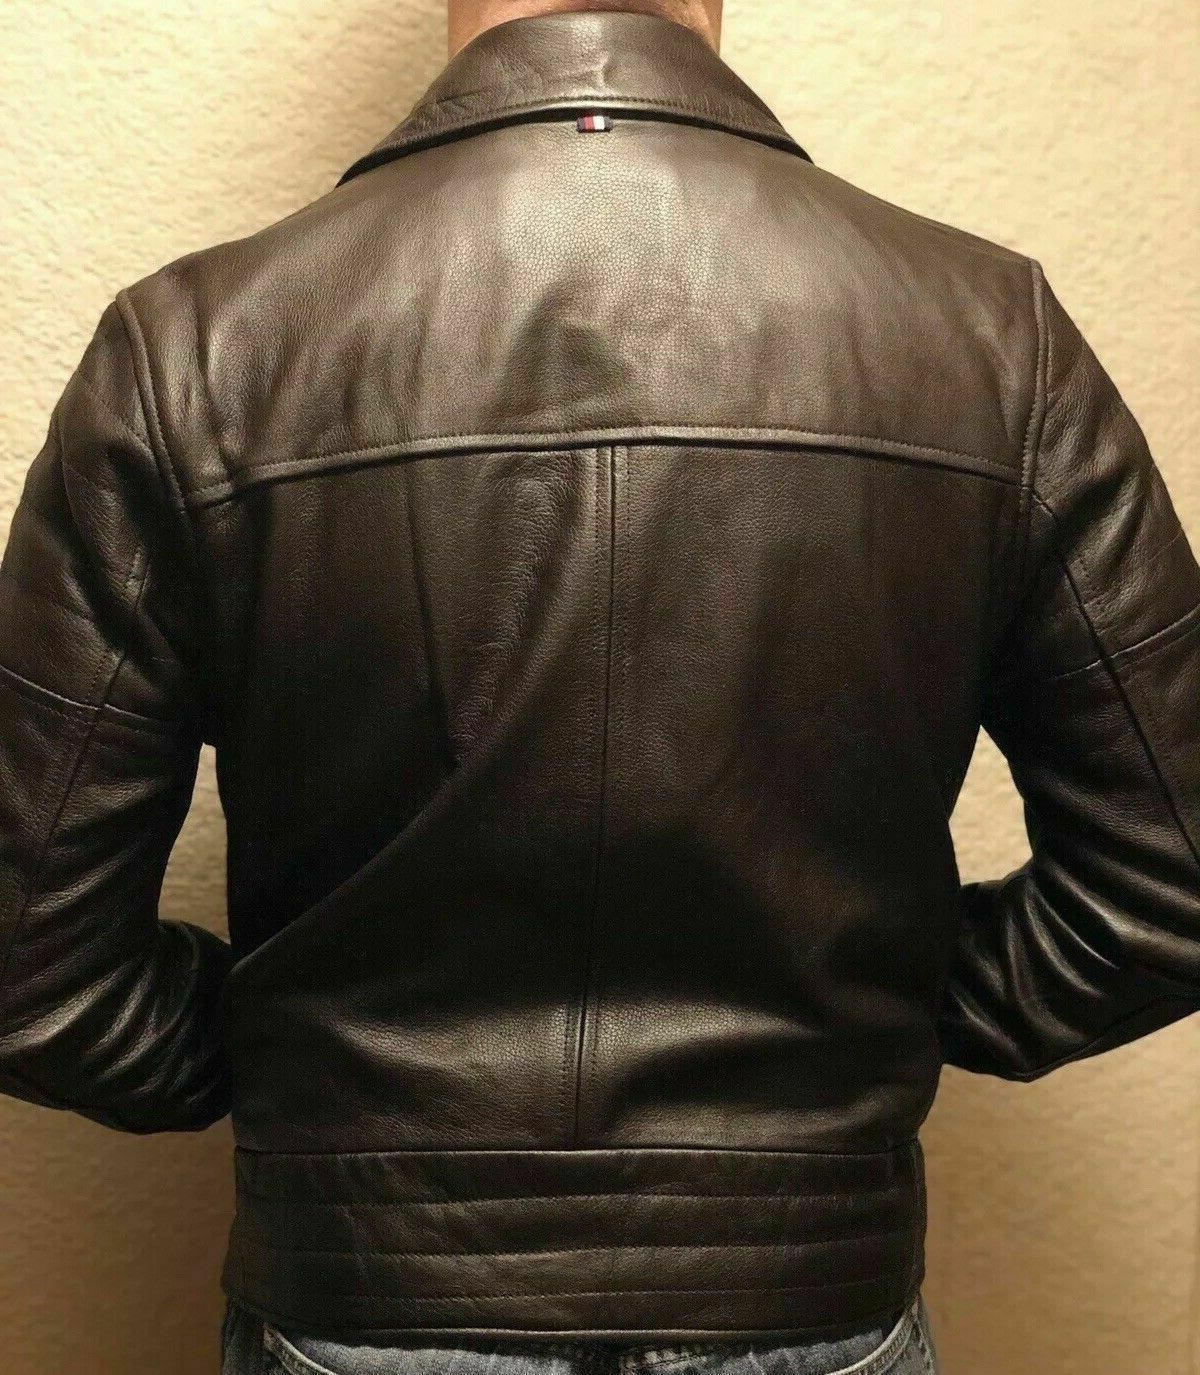 NWT TOMMY HILFIGER FALL LEATHER JACKET Retail